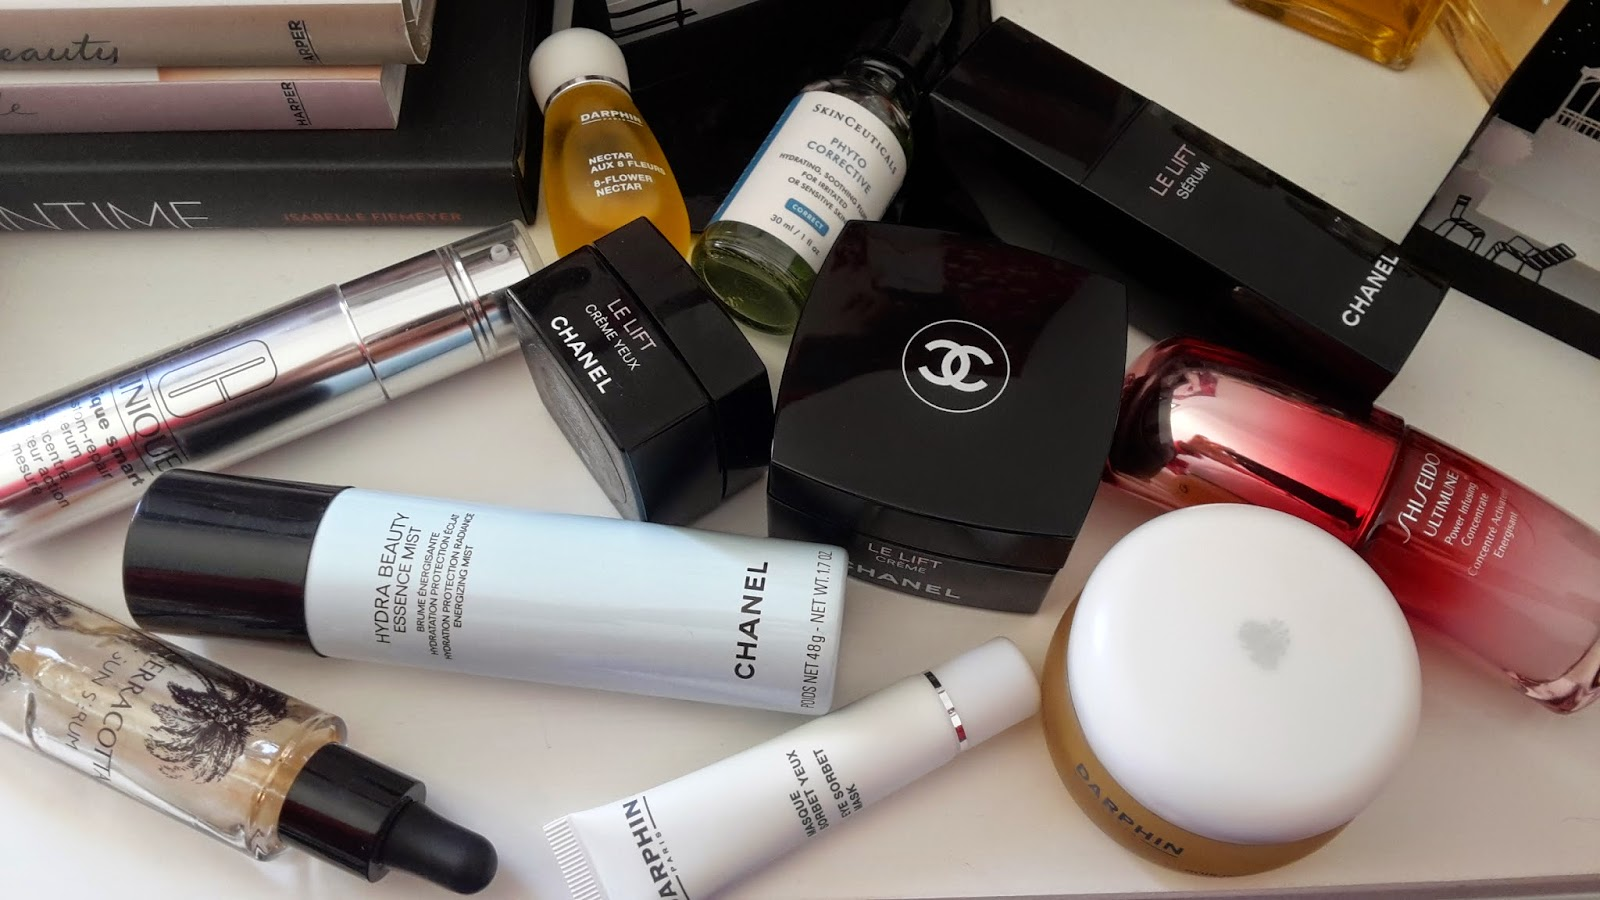 prodotti beauty skin care creme viso top 2014, chanel beauty, guerlain, darphin, clinique, shiseido